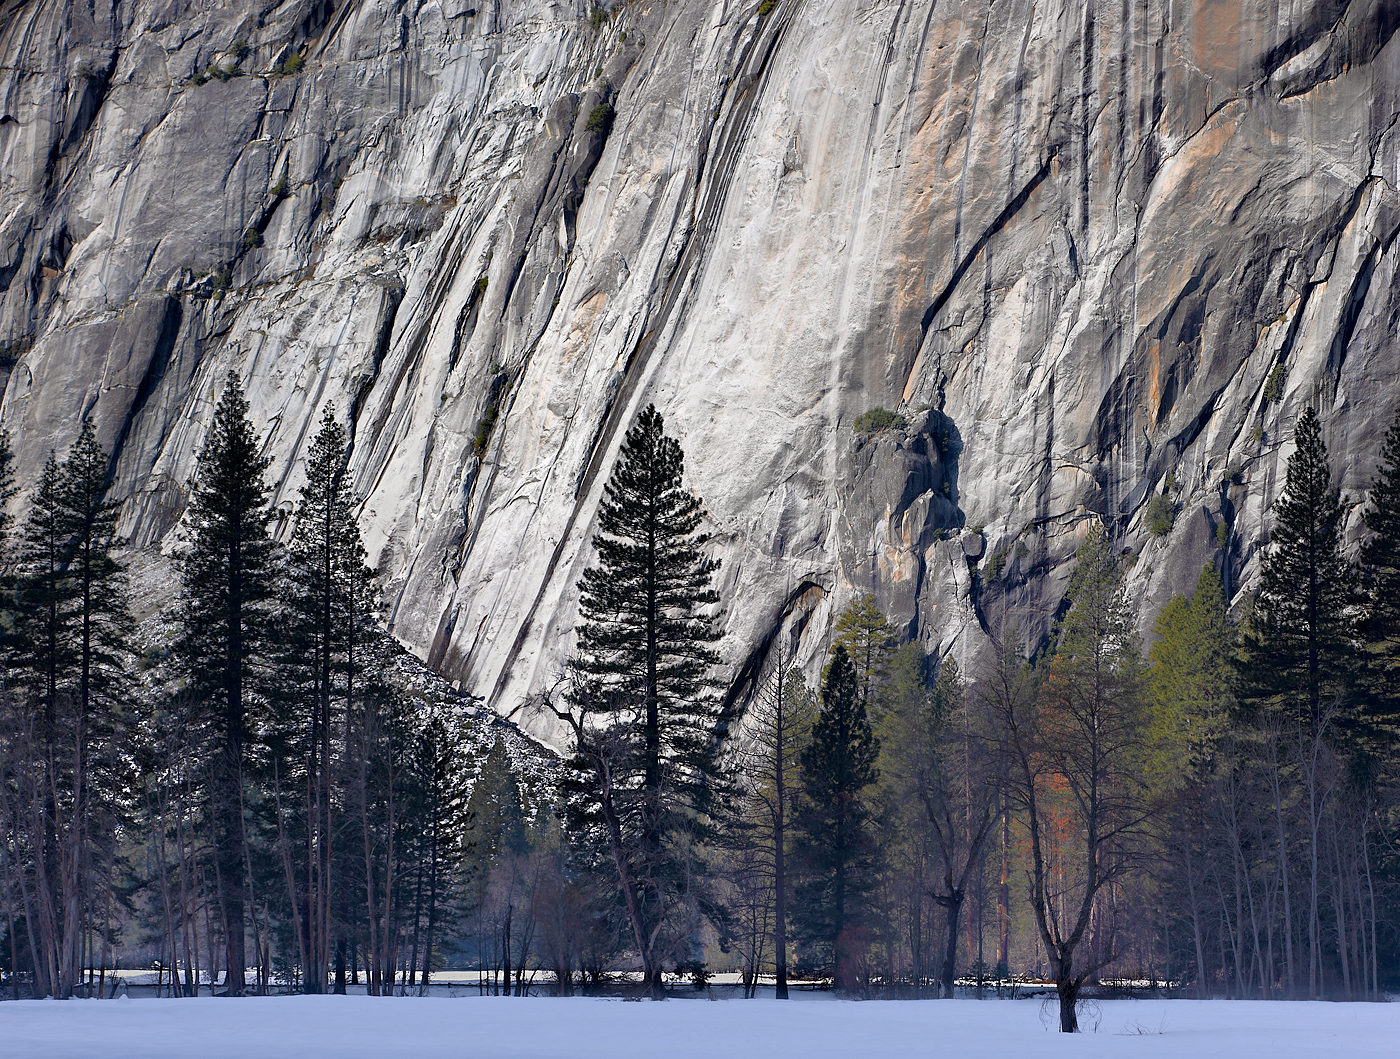 Granite, Yosemite National Park, California.